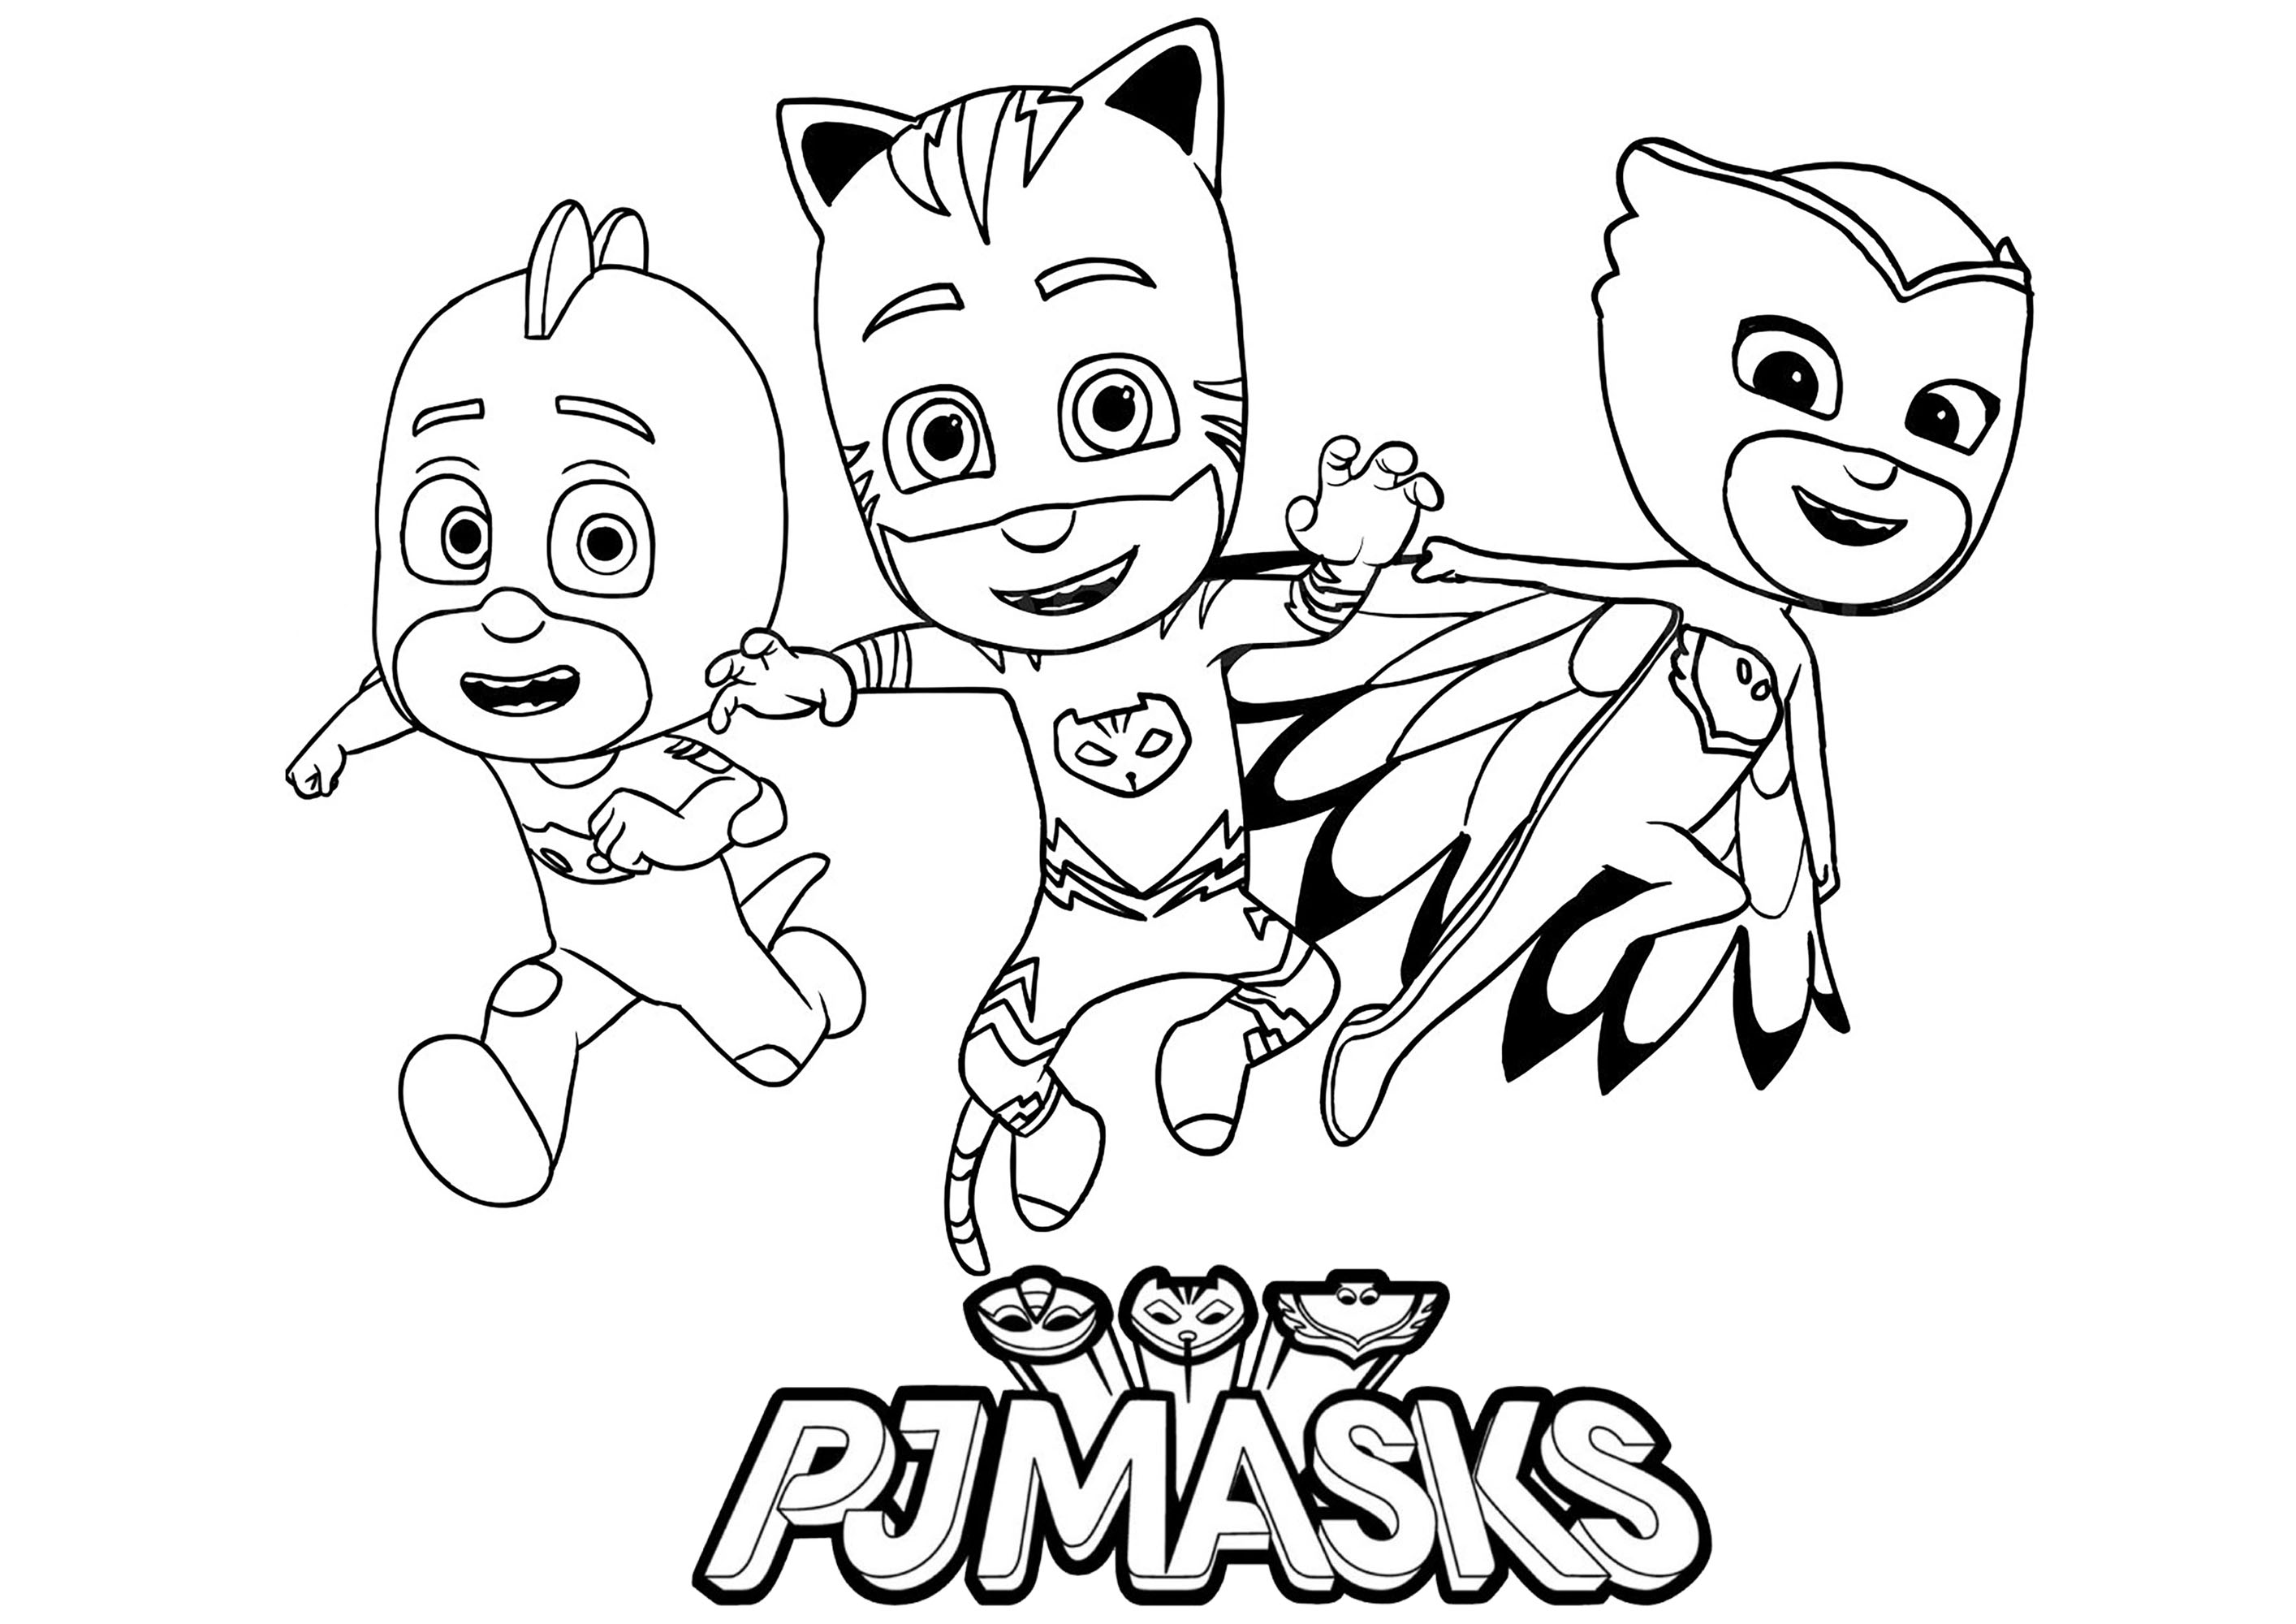 Printable Disney Coloring Pages For Kids: PJ Masks Kids Coloring Pages